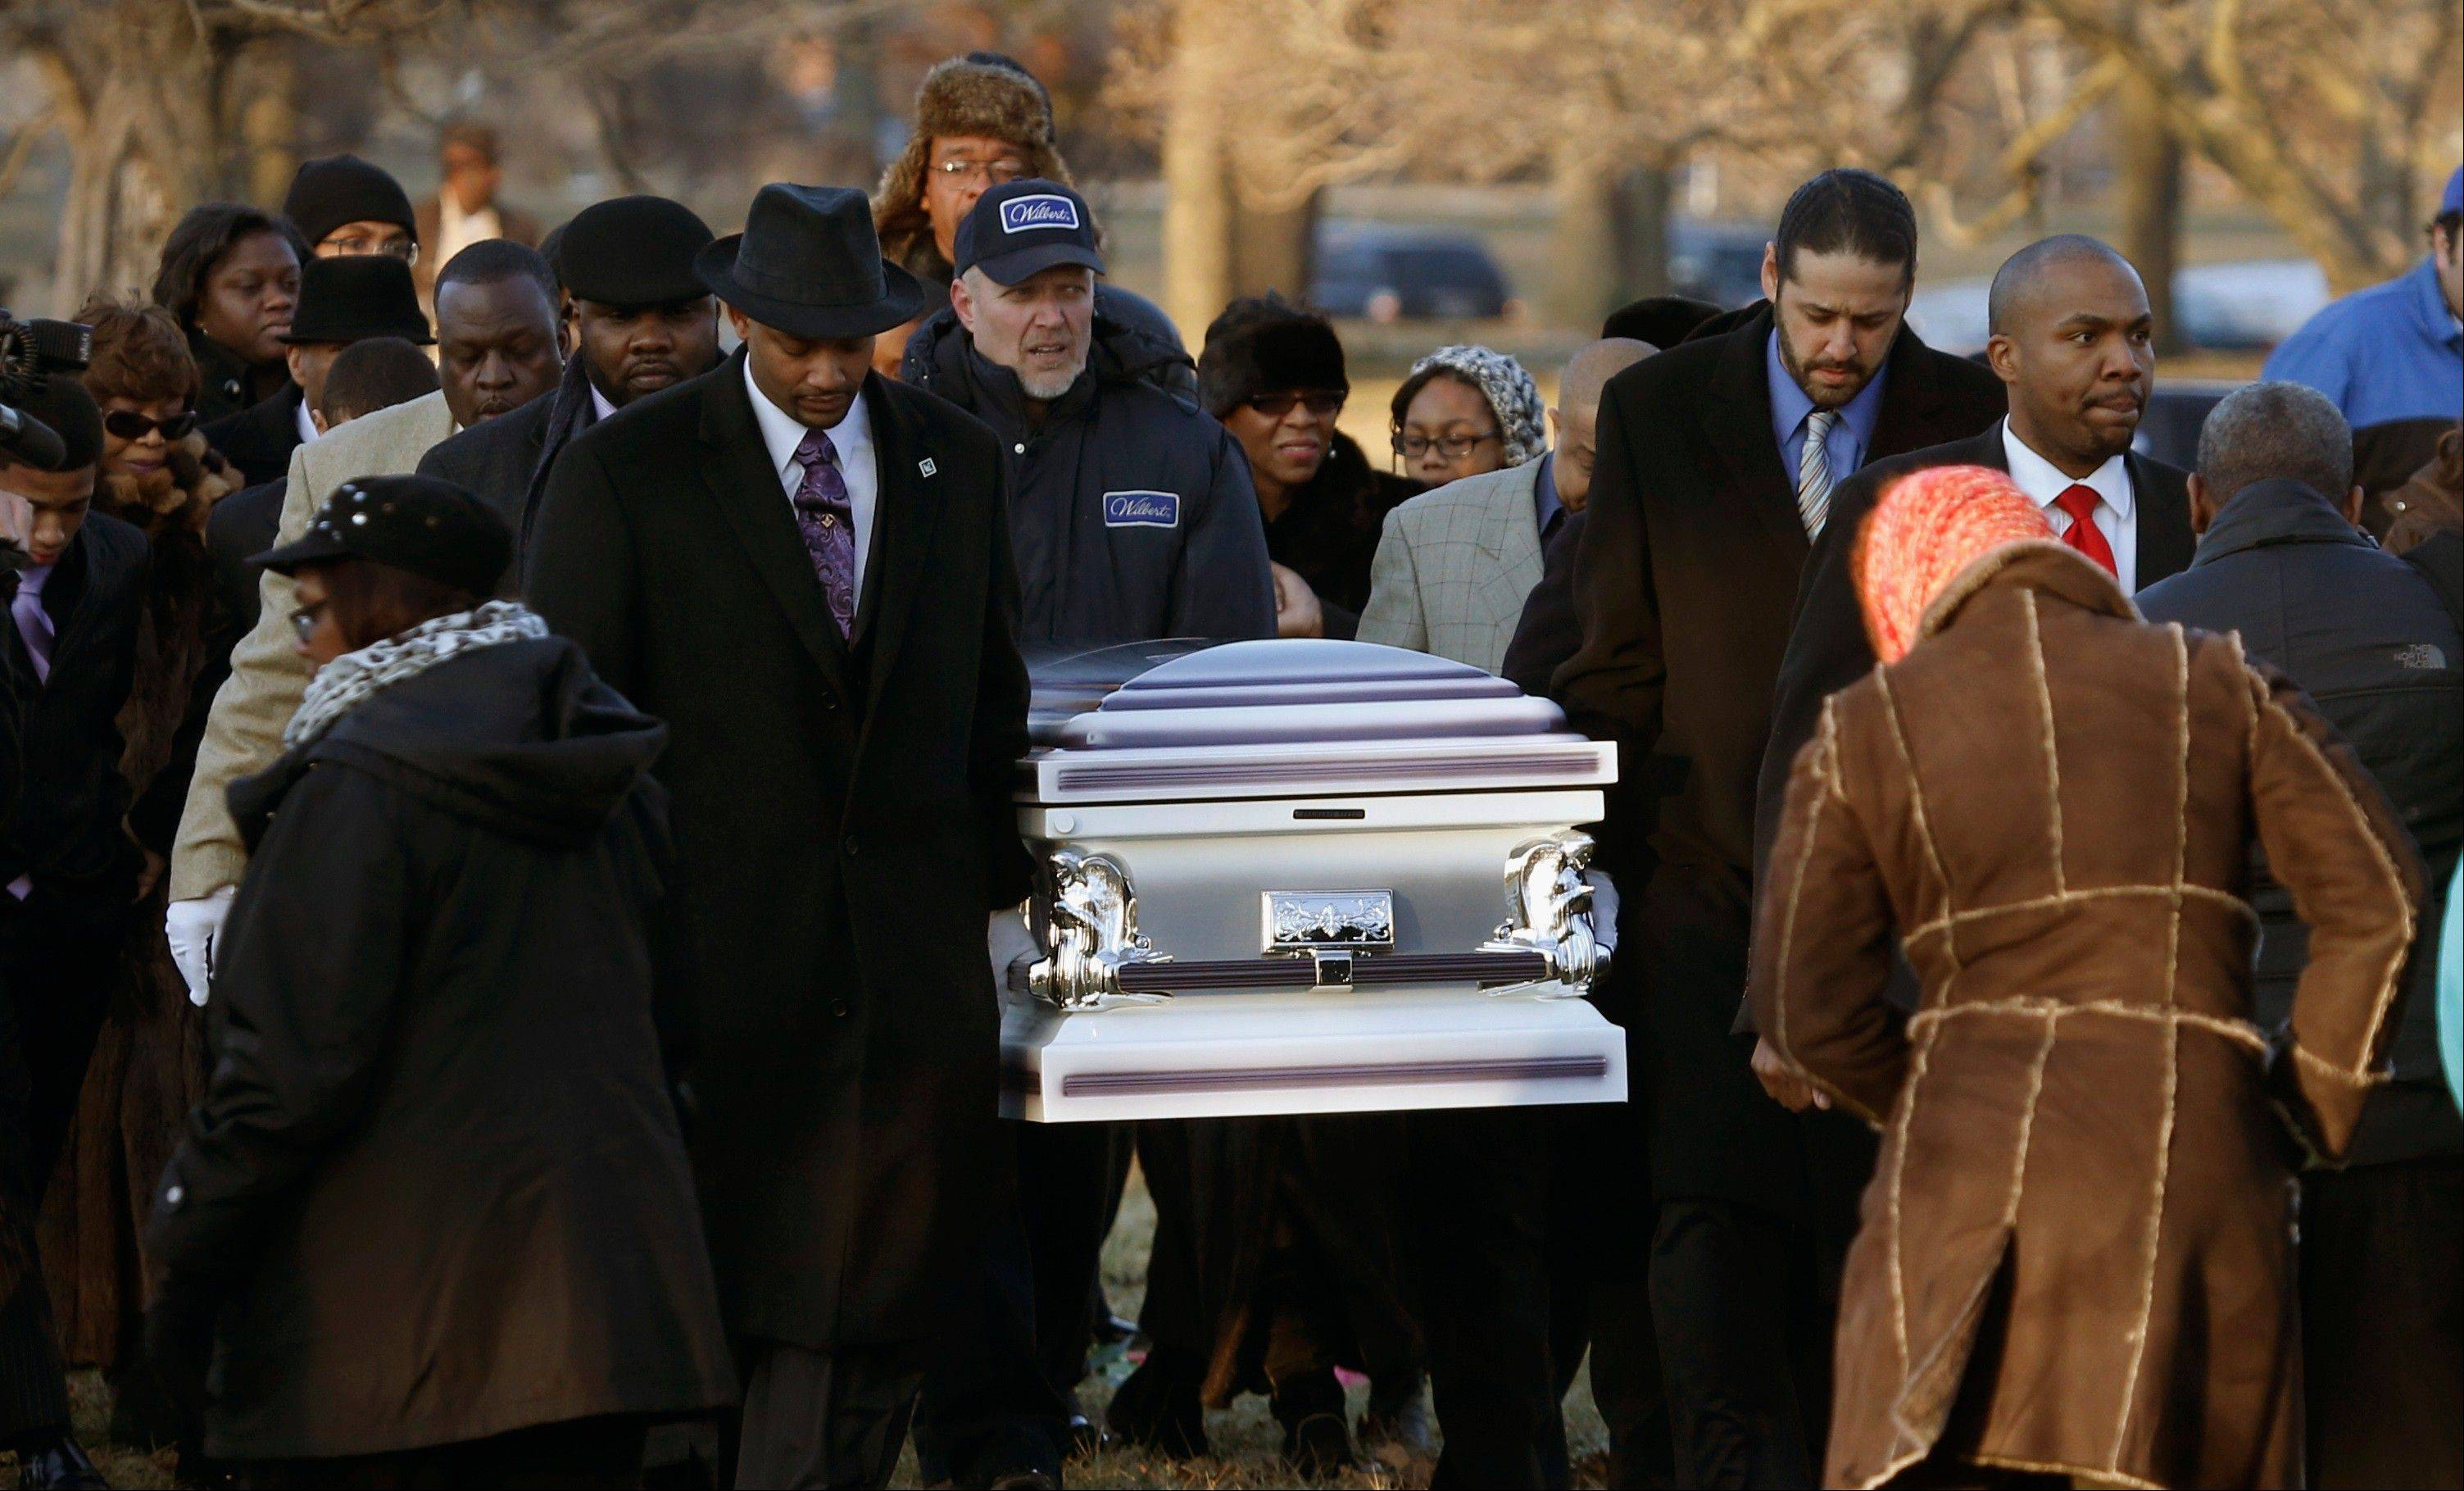 In this Feb. 9, 2013 file photo, the remains of 15-year-old Hadiya Pendleton are taken to her final resting place at the Cedar Park Cemetery in Calumet Park, Ill. Pendleton was killed on Jan. 29, when a gunman opened fire on her and some friends seeking shelter in a park from the rain about a mile from President Obama's Chicago home. first lady Michelle Obama attended the funeral with Senior White House Adviser Valerie Jarrett and Secretary of Education Arne Duncan. Chicago's continuing battle against gang violence was voted as one of the top 10 stories in Illinois for 2013.